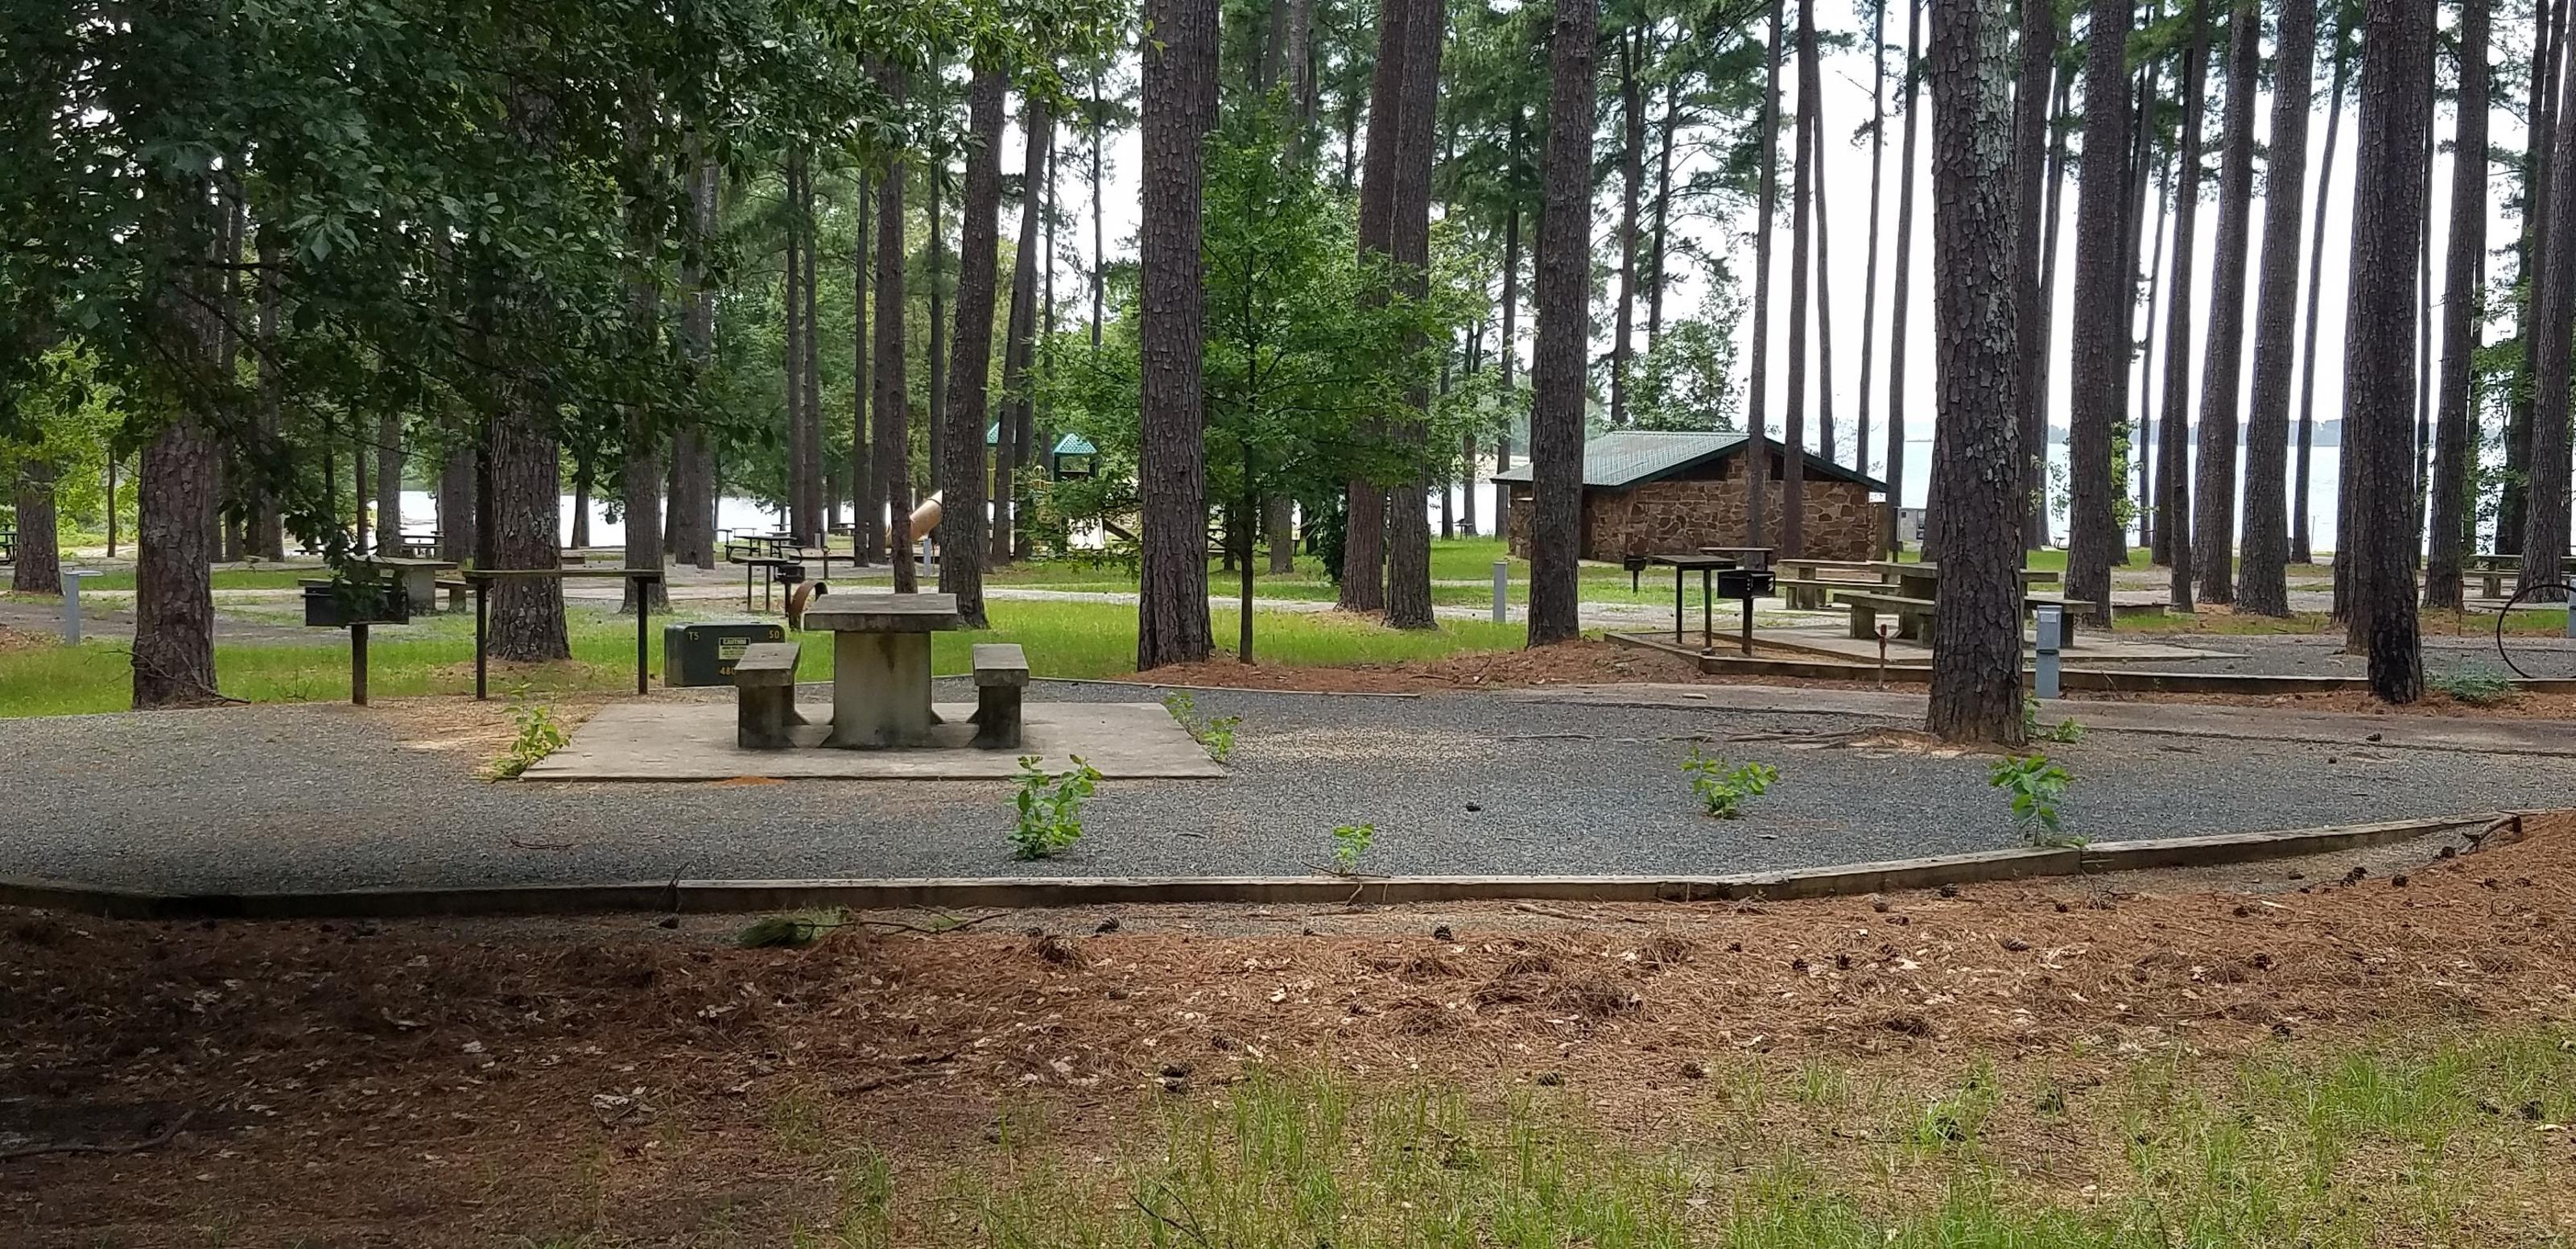 Campsite in Piney Point Park at Wright Patman Lake